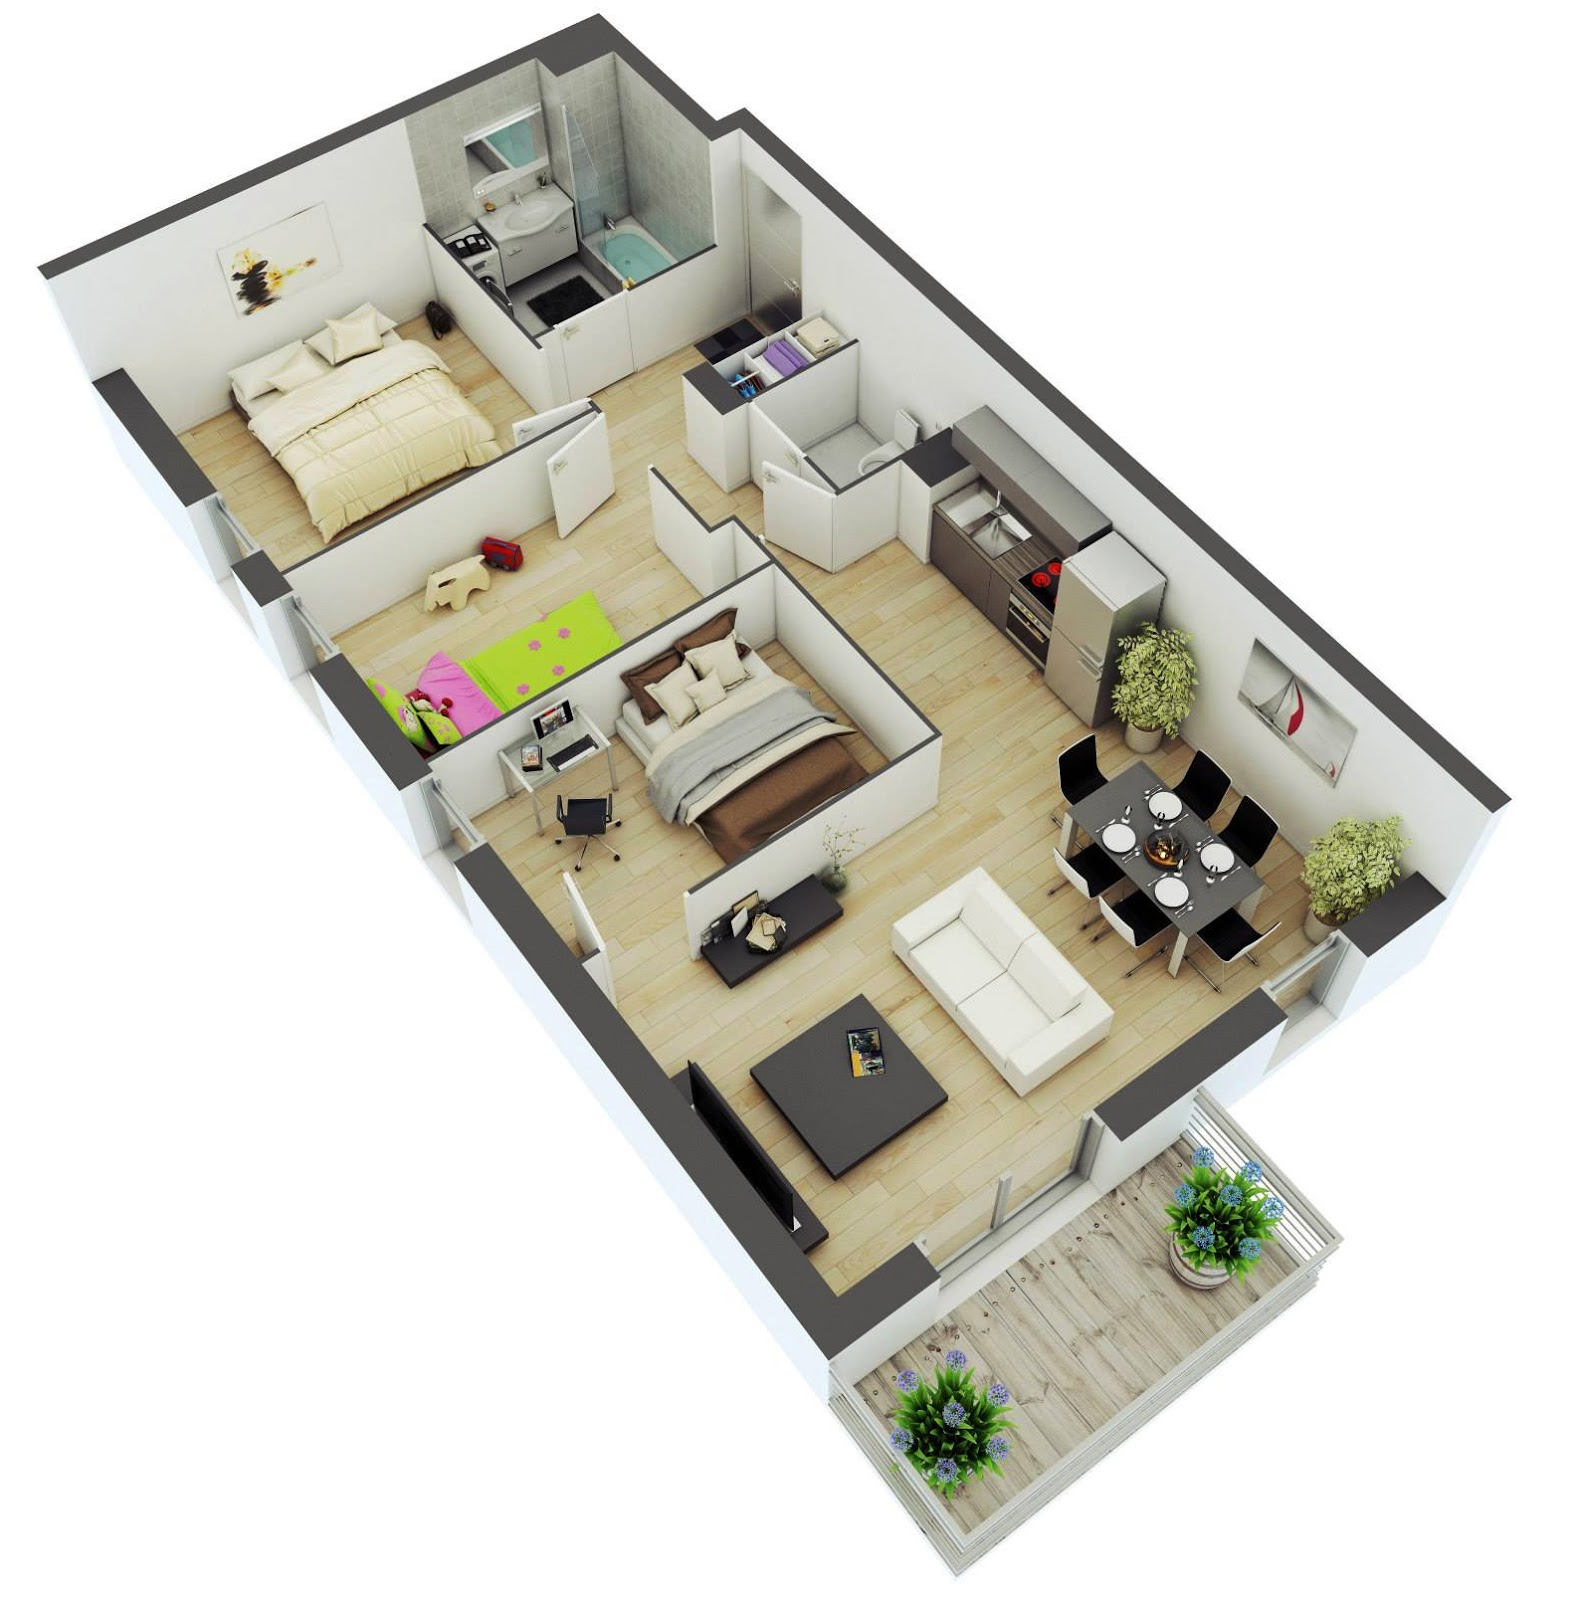 House Floor Plans 3d Small House Design With Large Living Space Small Home Designs Floor Plans